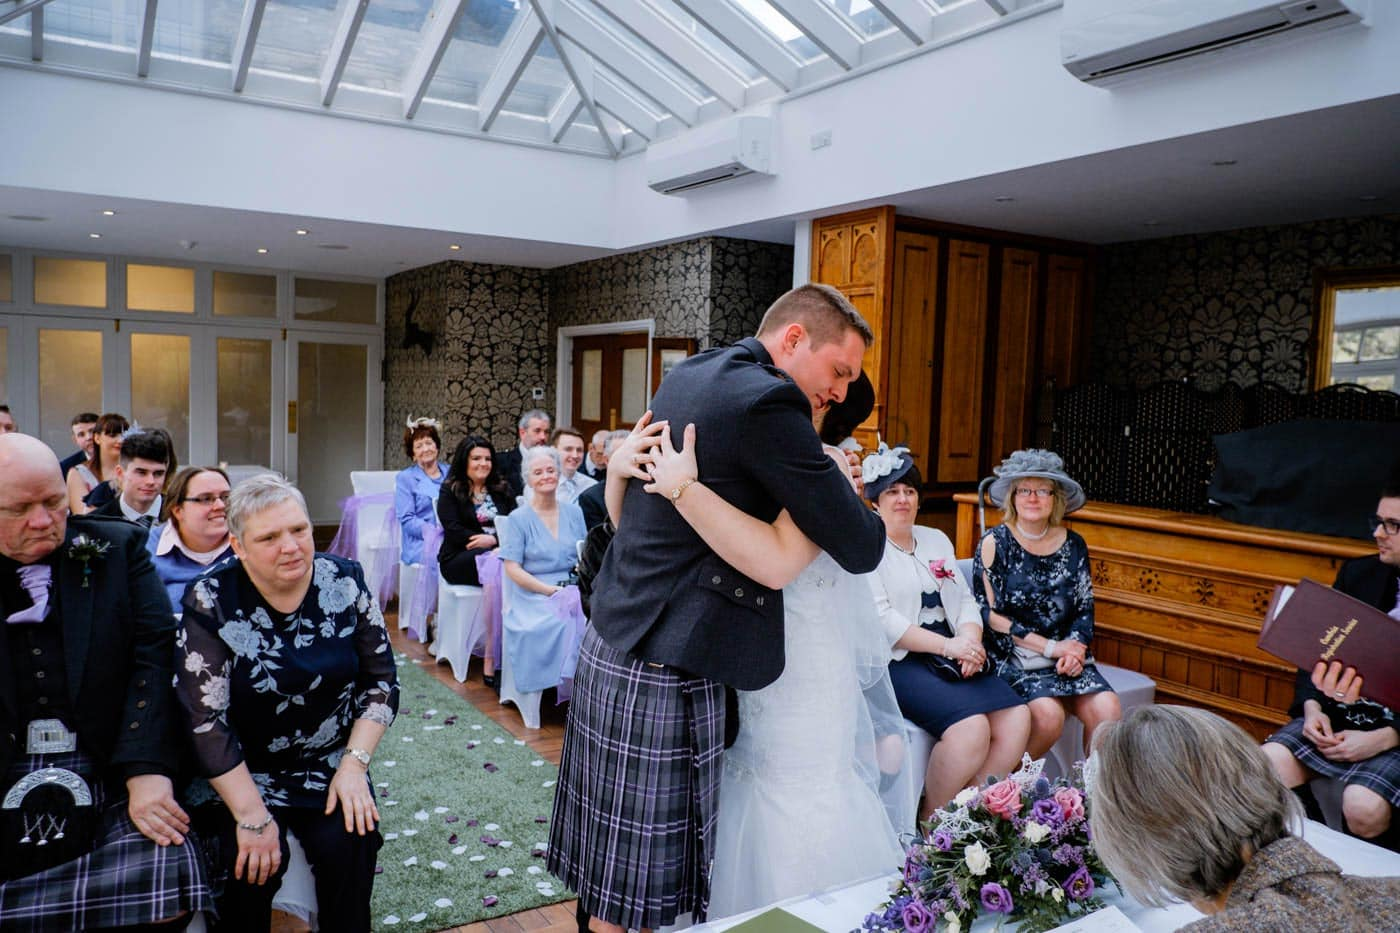 Scottish bride and groom hugging during their Lake District wedding ceremony at Broadoaks Country House